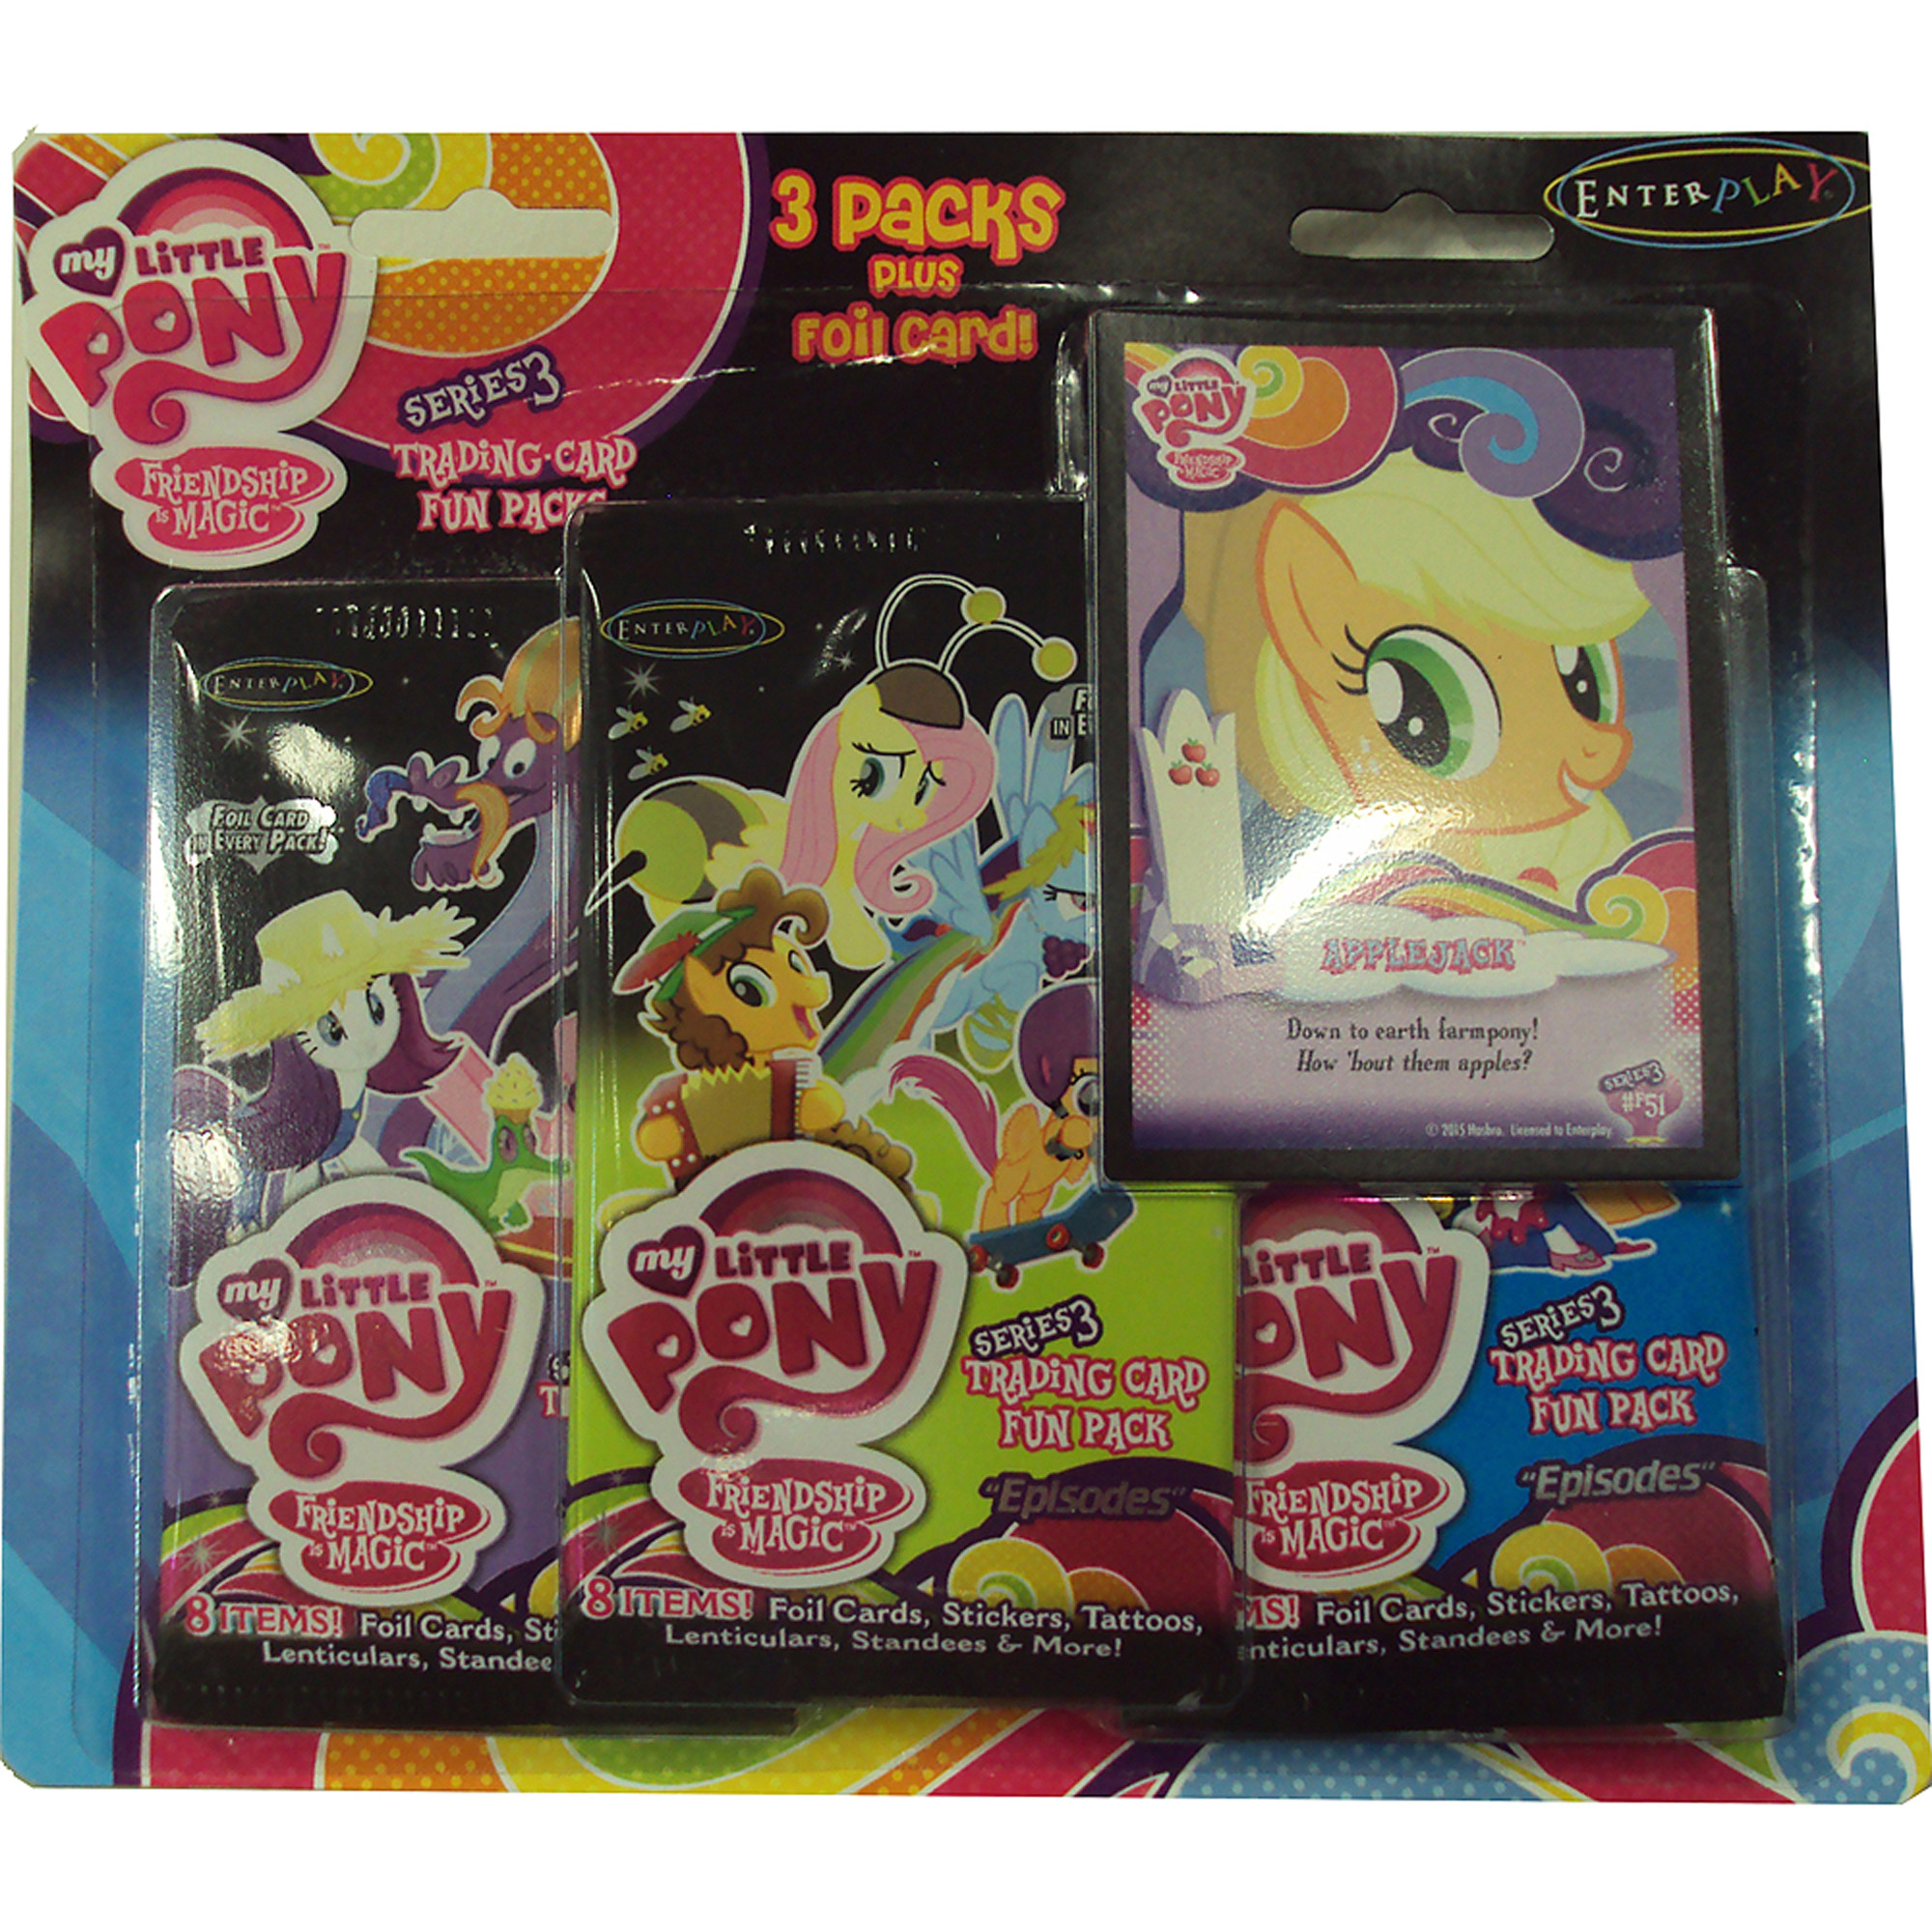 My Little Pony Friendship is Magic Series Trading Card Fun Pack, 3 Pack